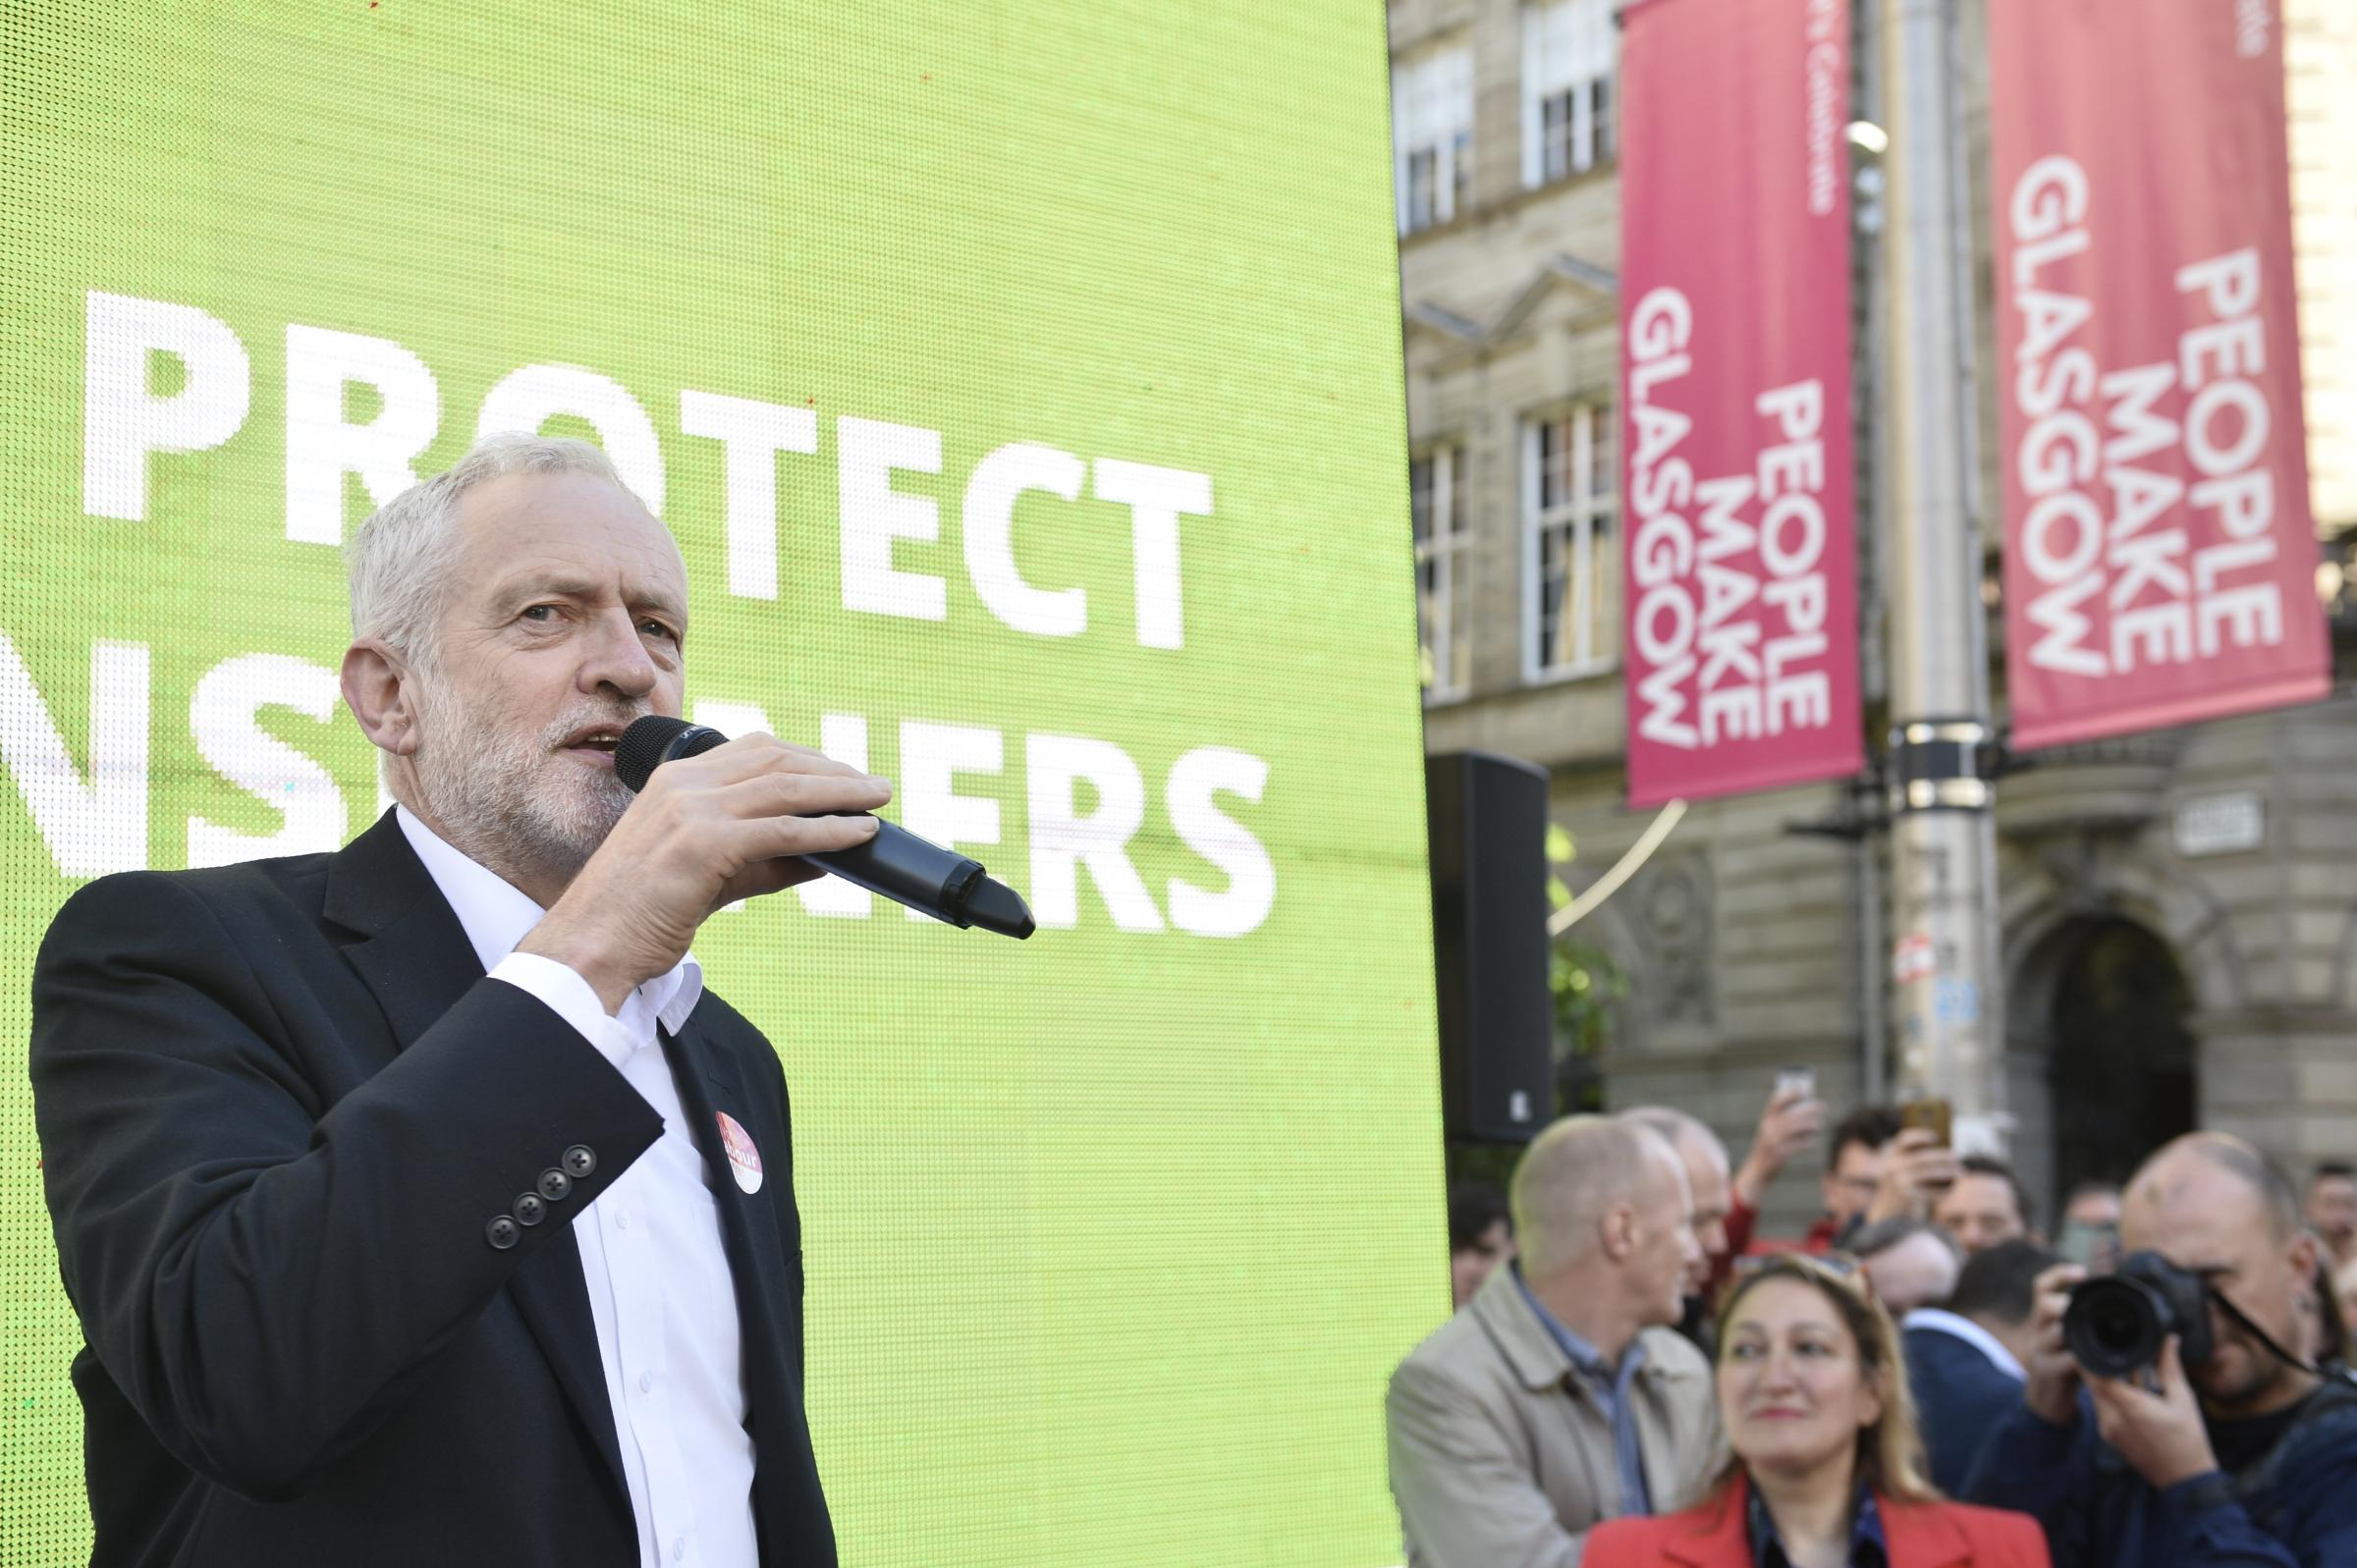 Jeremy Corbyn will visit Glasgow during COP26 in call for climate justice